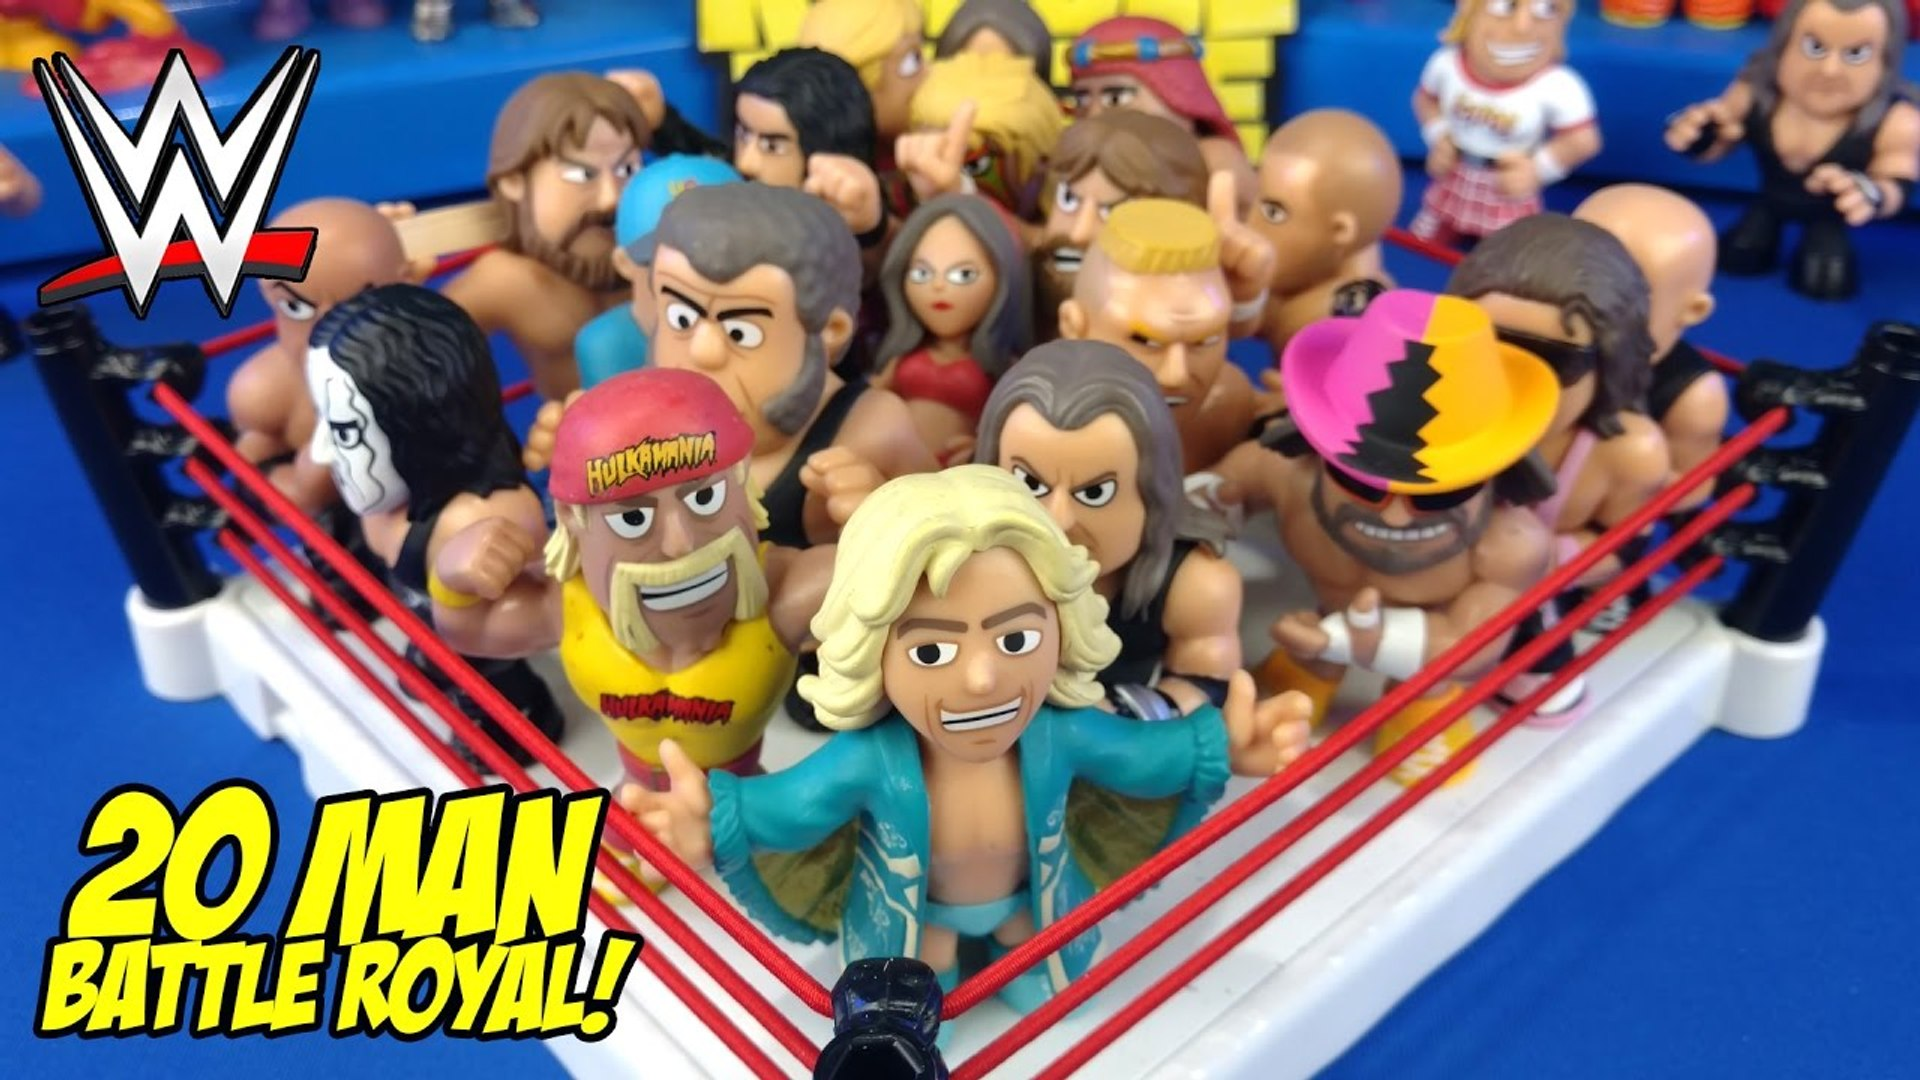 HUGE WWE Toys Battle Royal-- Shake Rumble Wrestling with WWE Mystery Minis // RUMBLE LEAGUE